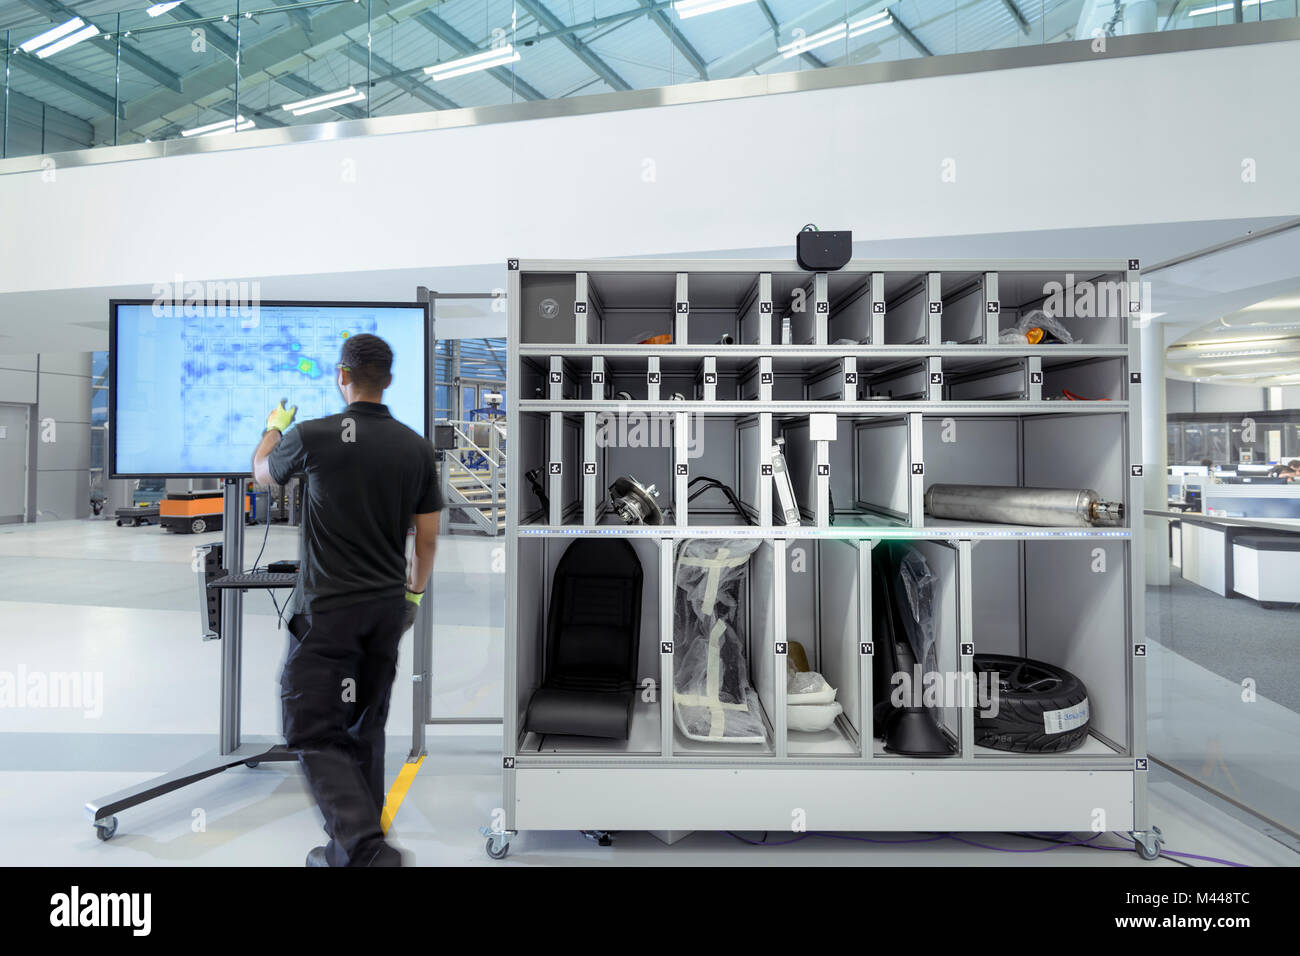 Engineer using artificial intelligence aid to pick parts for product assembly in robotics research facility Stock Photo